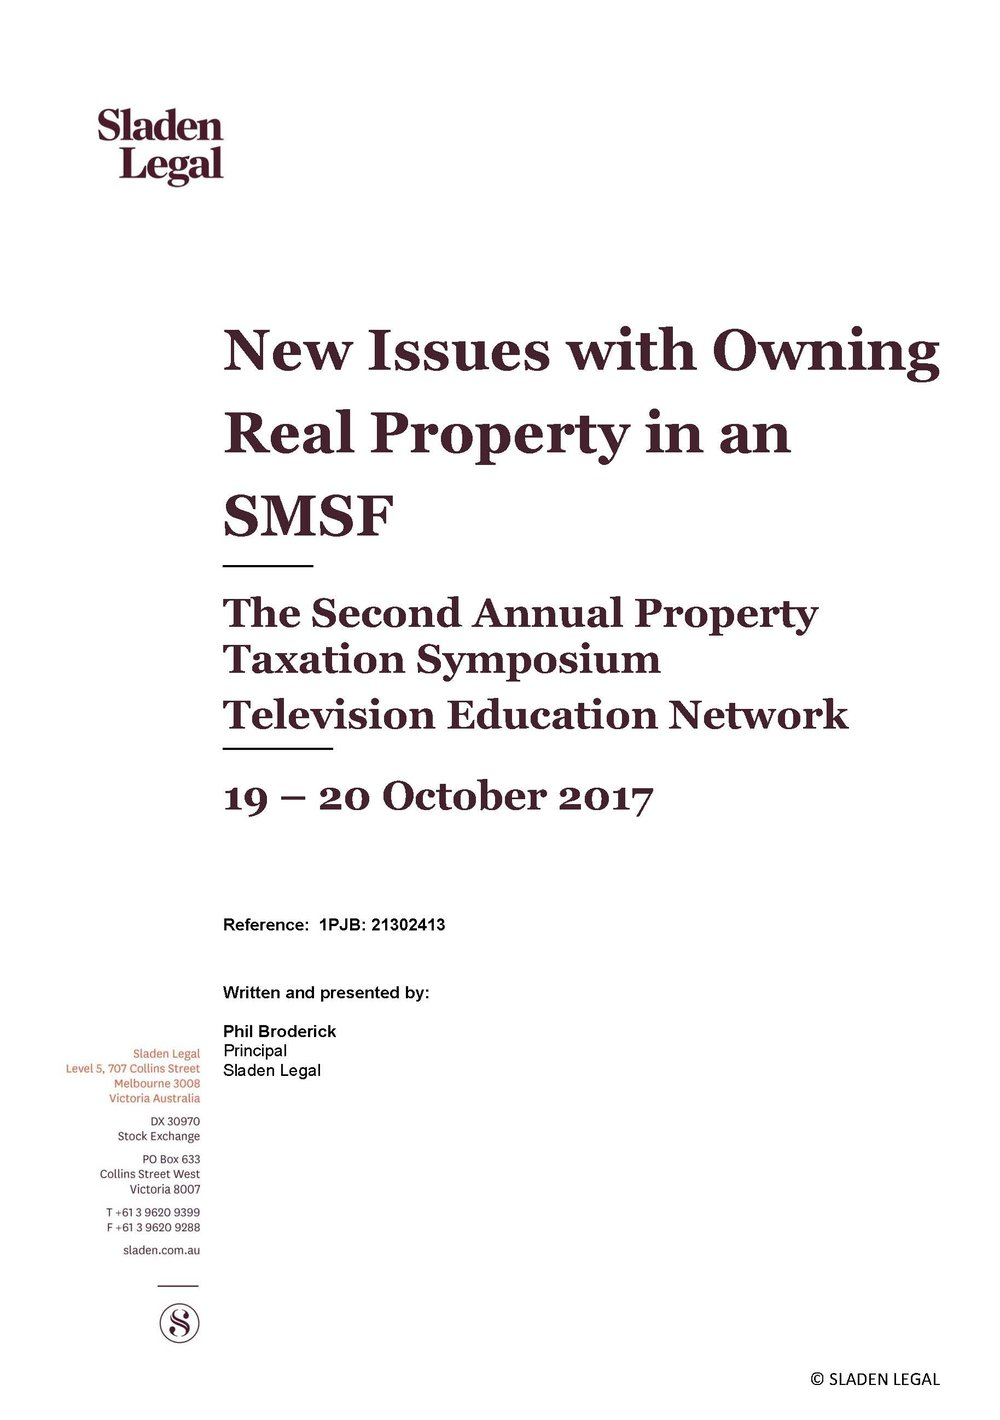 New Issues with Owning Real Property in an SMSF October 25 2017